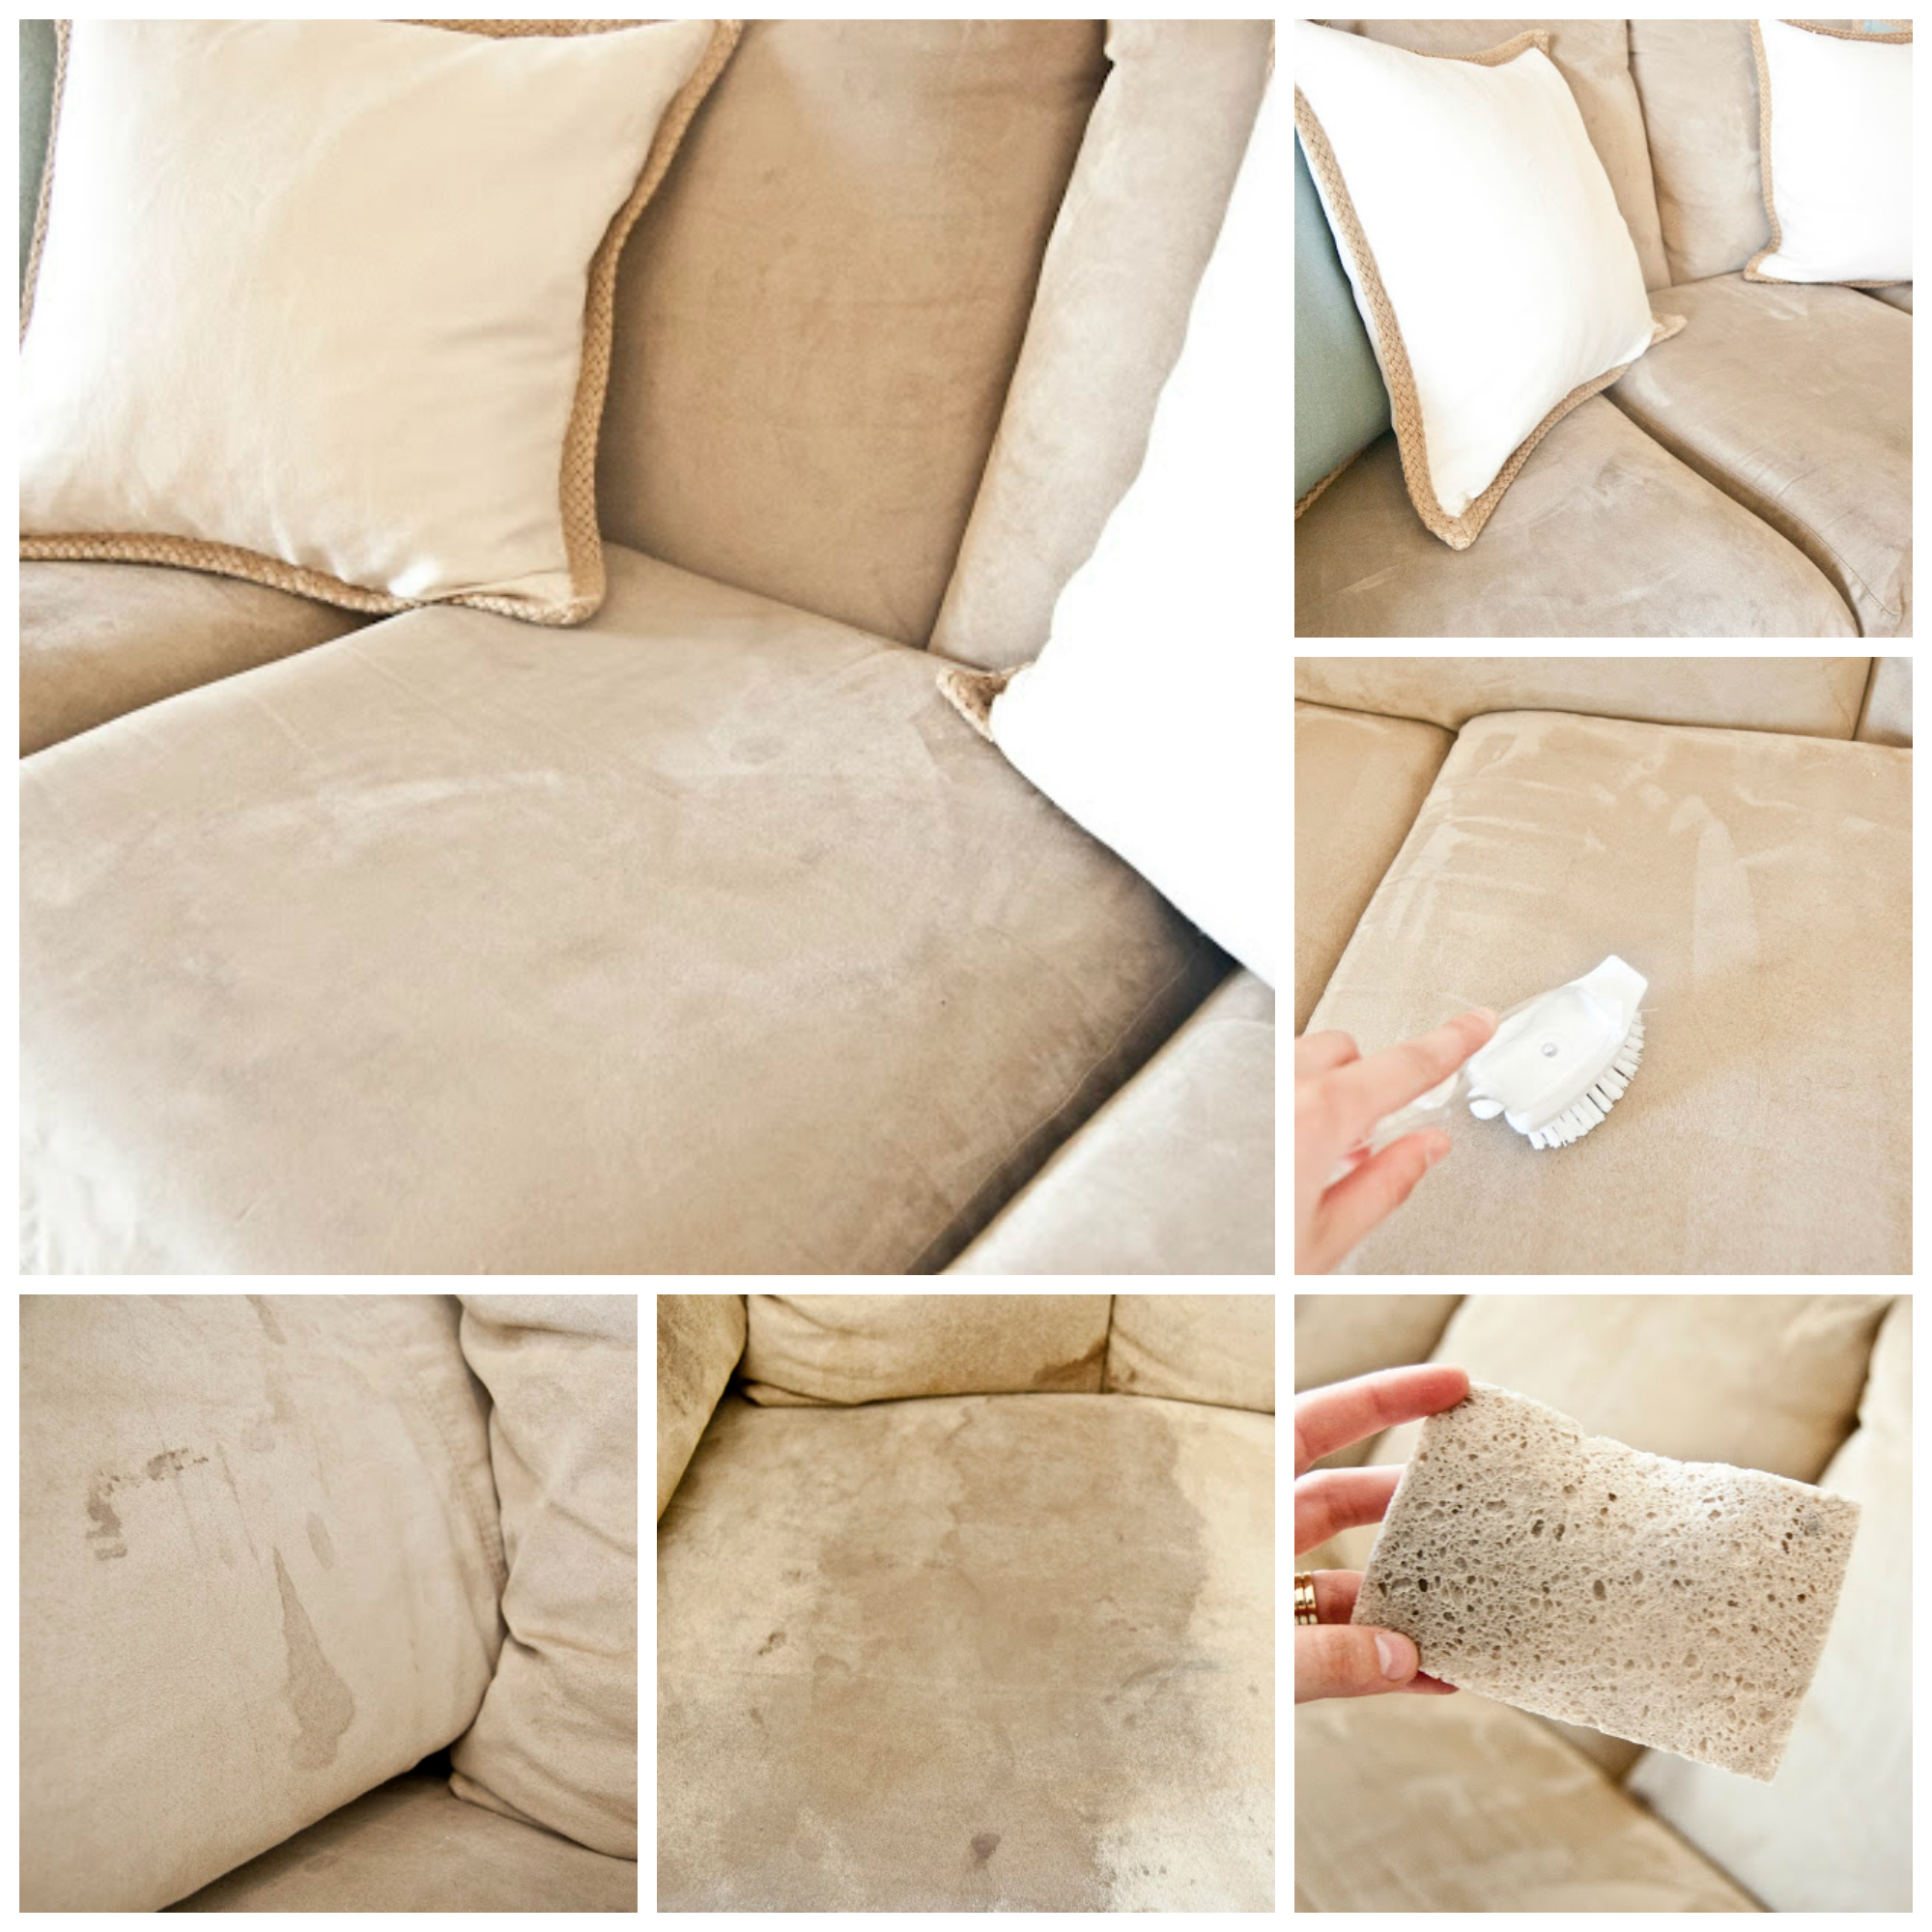 How To Clean A Microfiber Couch Sunflower Cleaning Group Residential Commercial Services